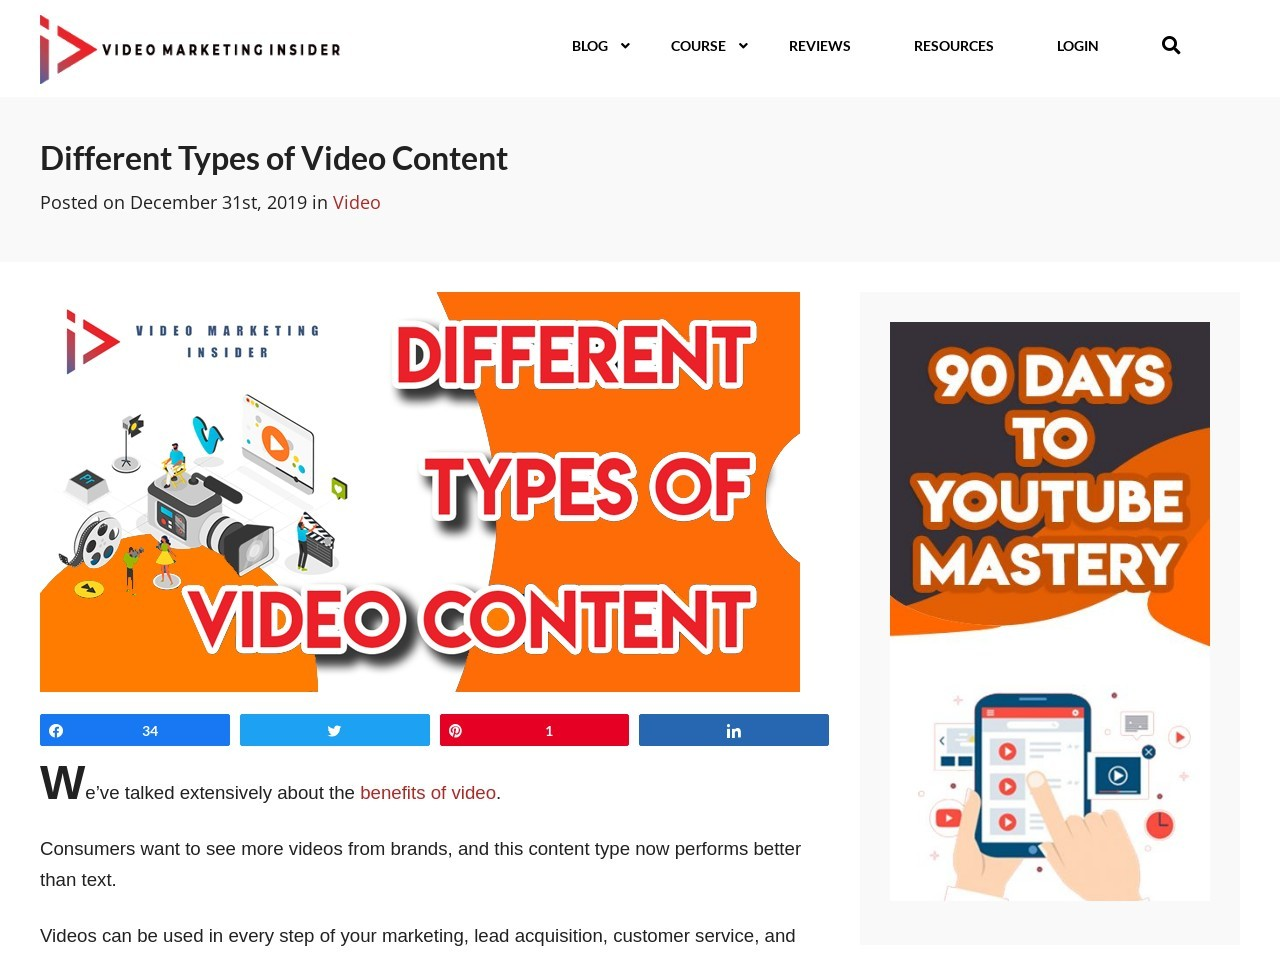 Different Types of Video Content